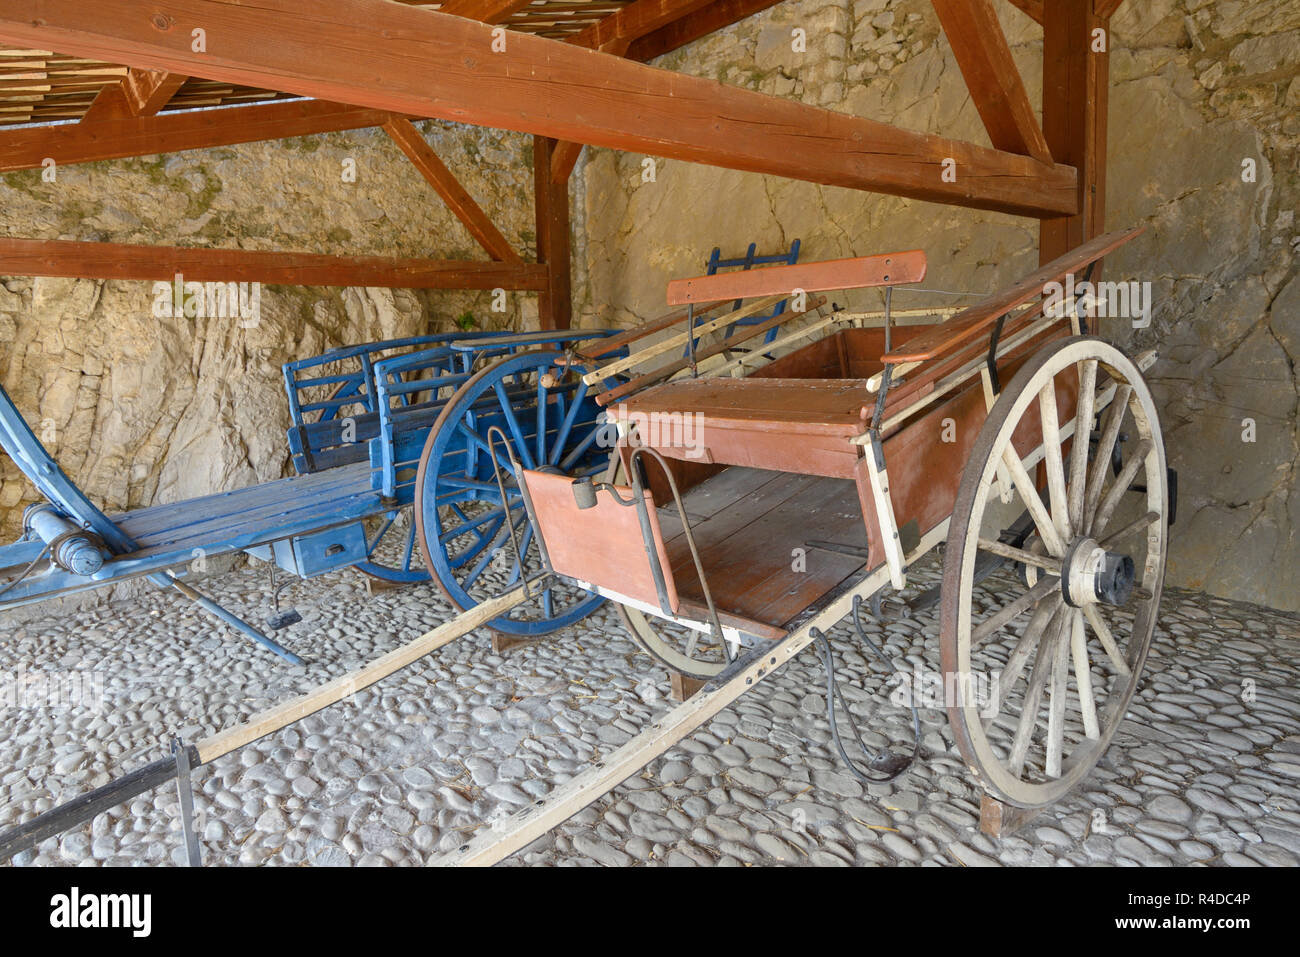 Vintage or Old Horse-Drawn Carts c19th including a Fourragère or Hay Cart & Jardiniere or Garden Cart on Display in the Citadel Sisteron - Stock Image